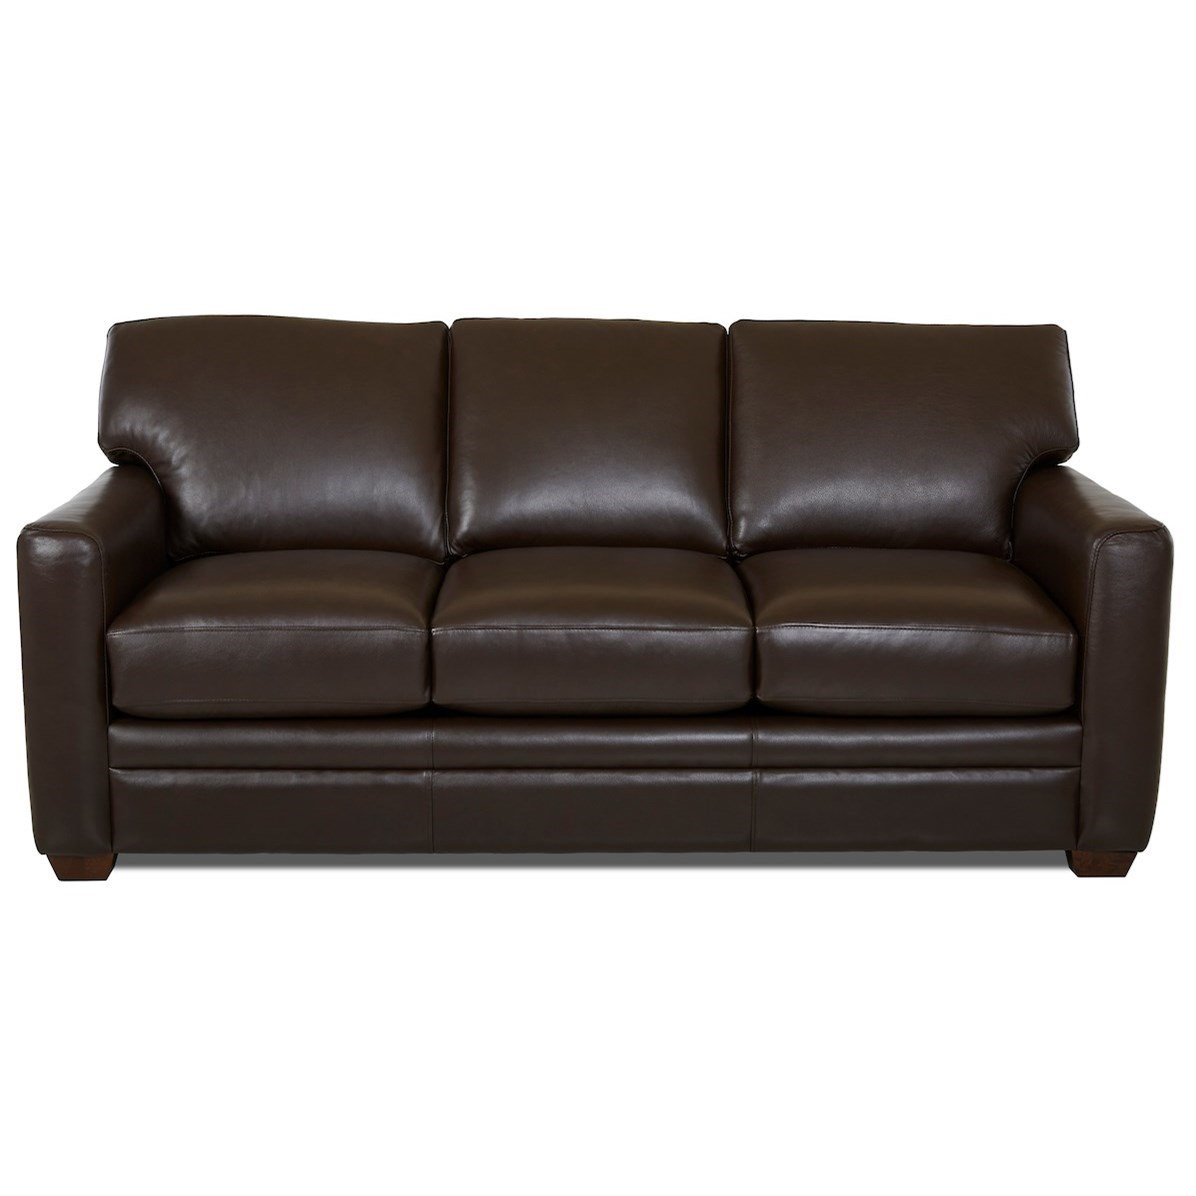 - Klaussner Fedora Queen Leather Sleeper Sofa With Enso Memory Foam